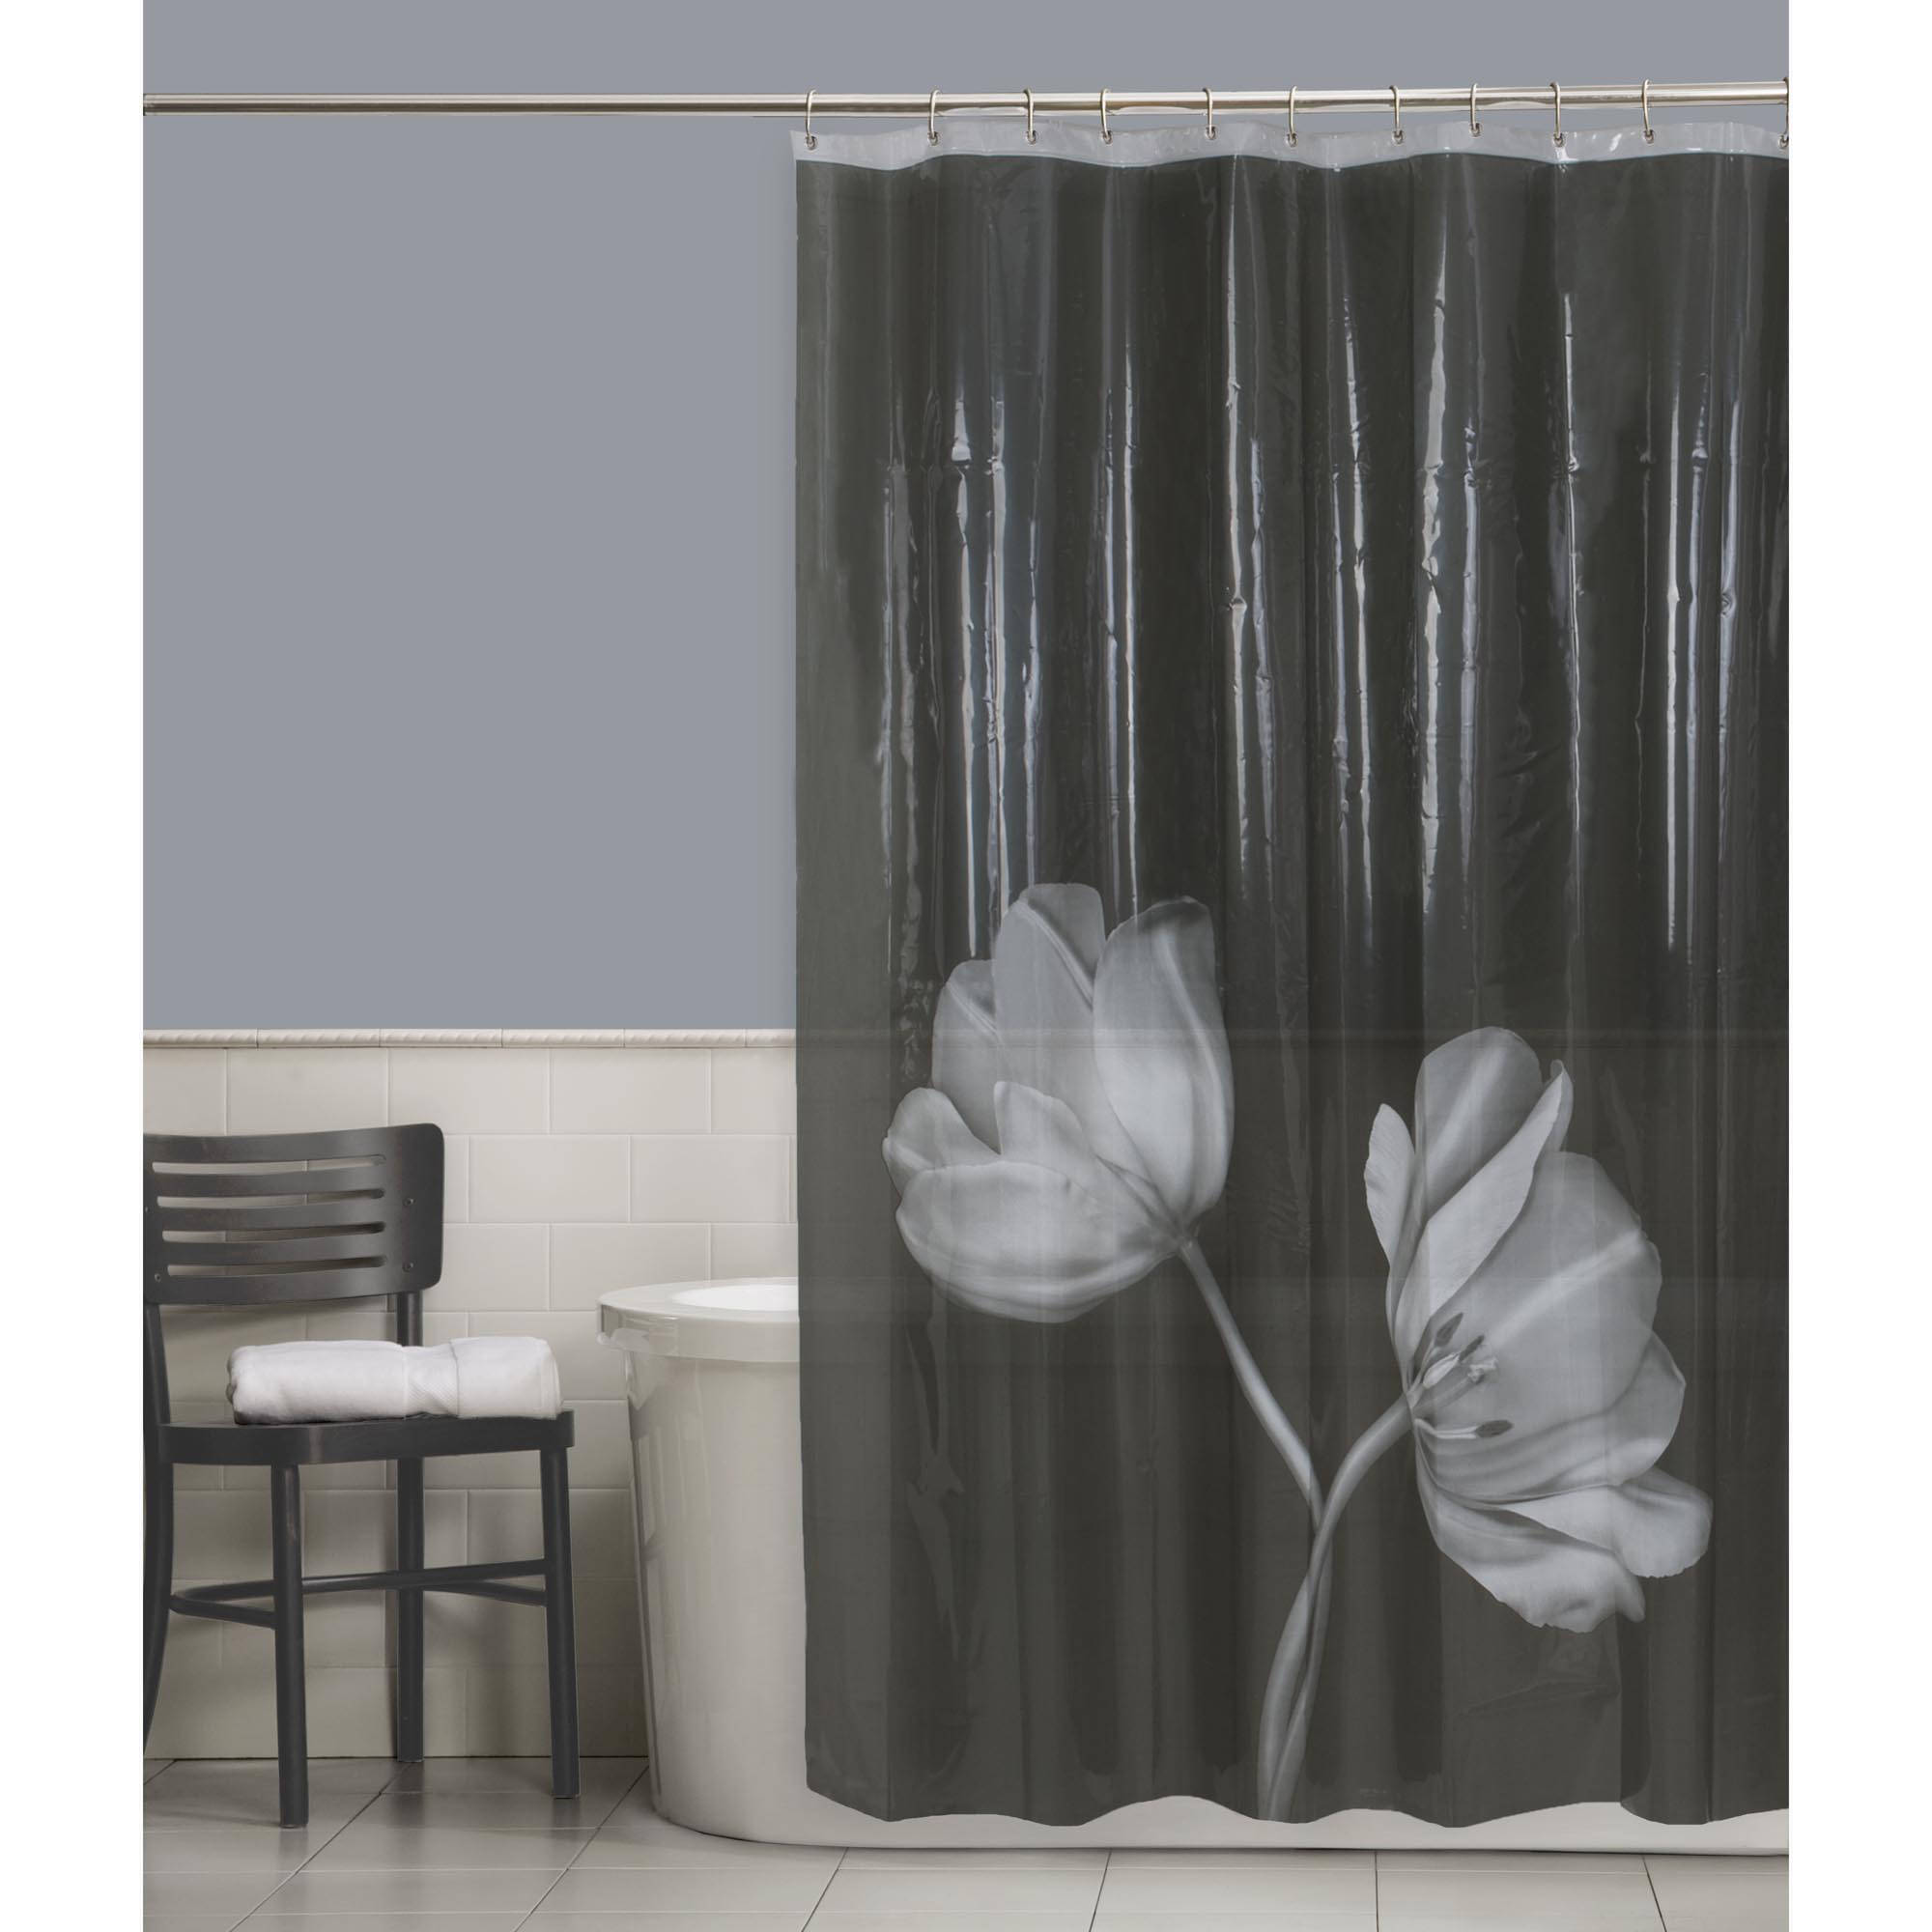 Maytex Tulip PEVA Vinyl Shower Curtain, Black   Walmart.com